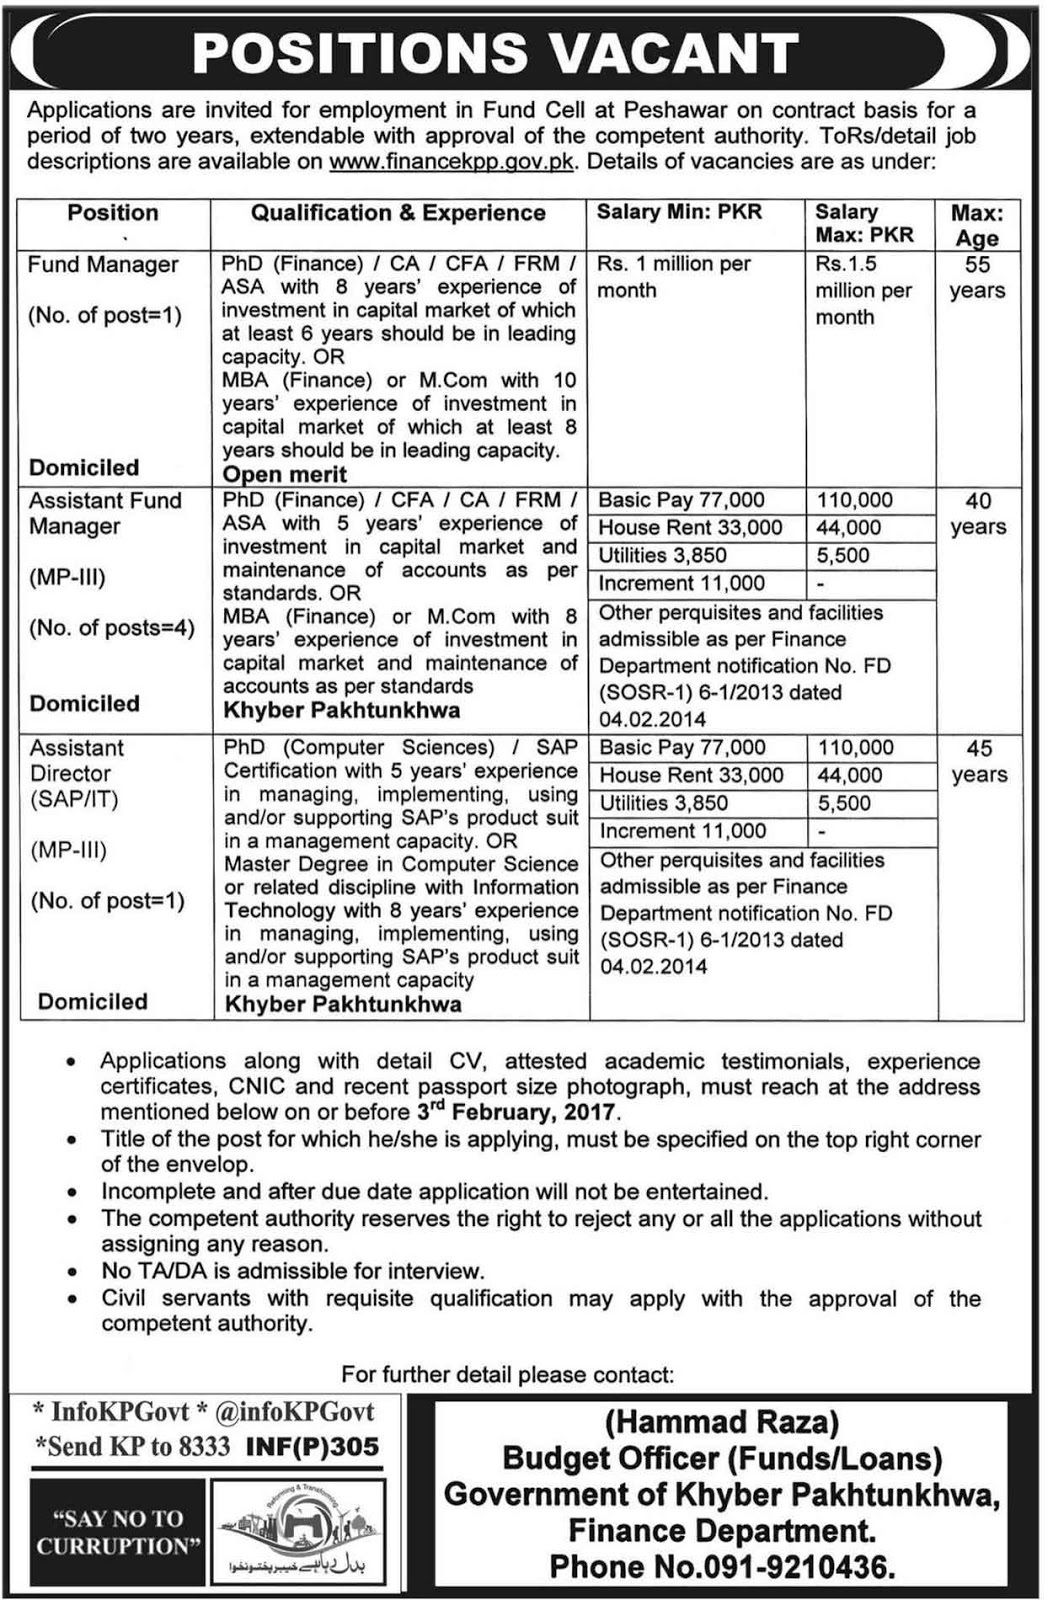 Khyber Pakhtunkhwa Finance Department Fund Cell Peshawar Jobs